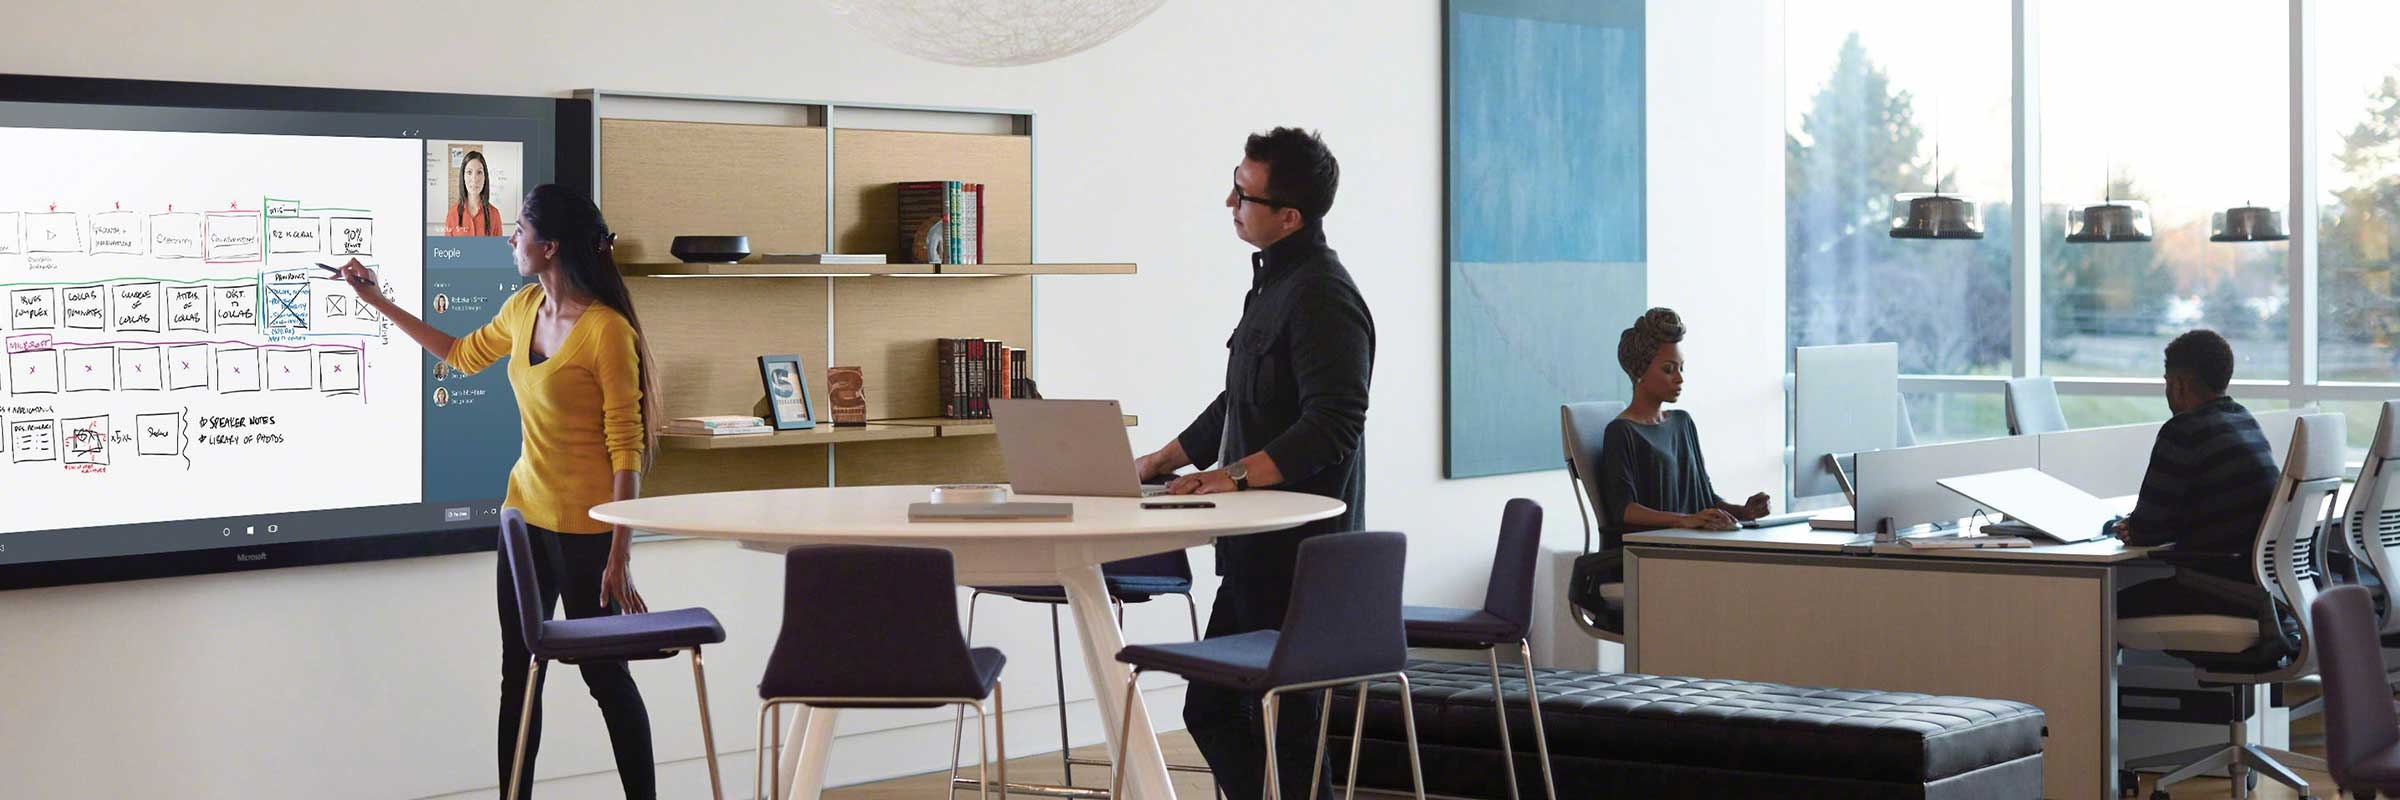 people collaborating in a transformed workplace